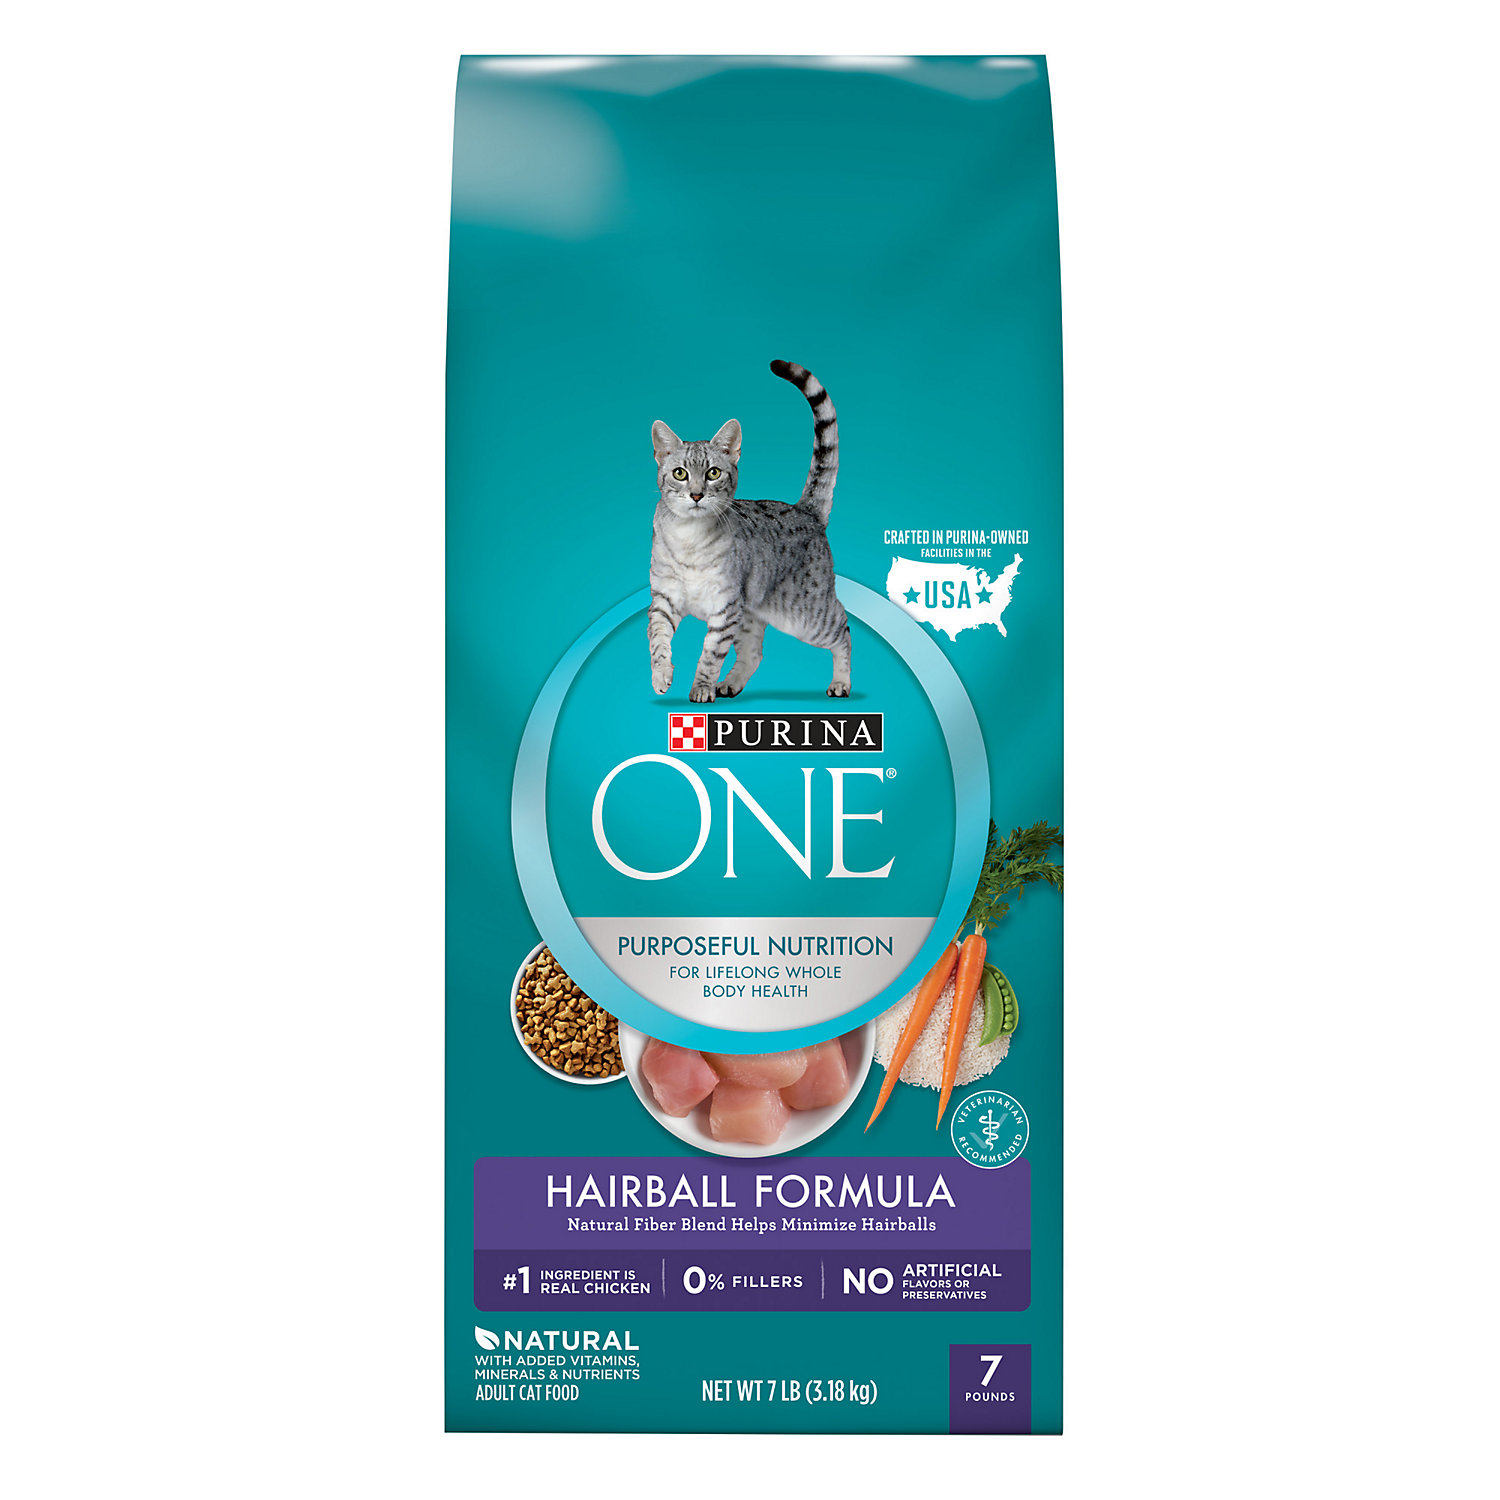 Purina One Special Care Advanced Nutrition Hairball Formula Cat Food 7 Lb.